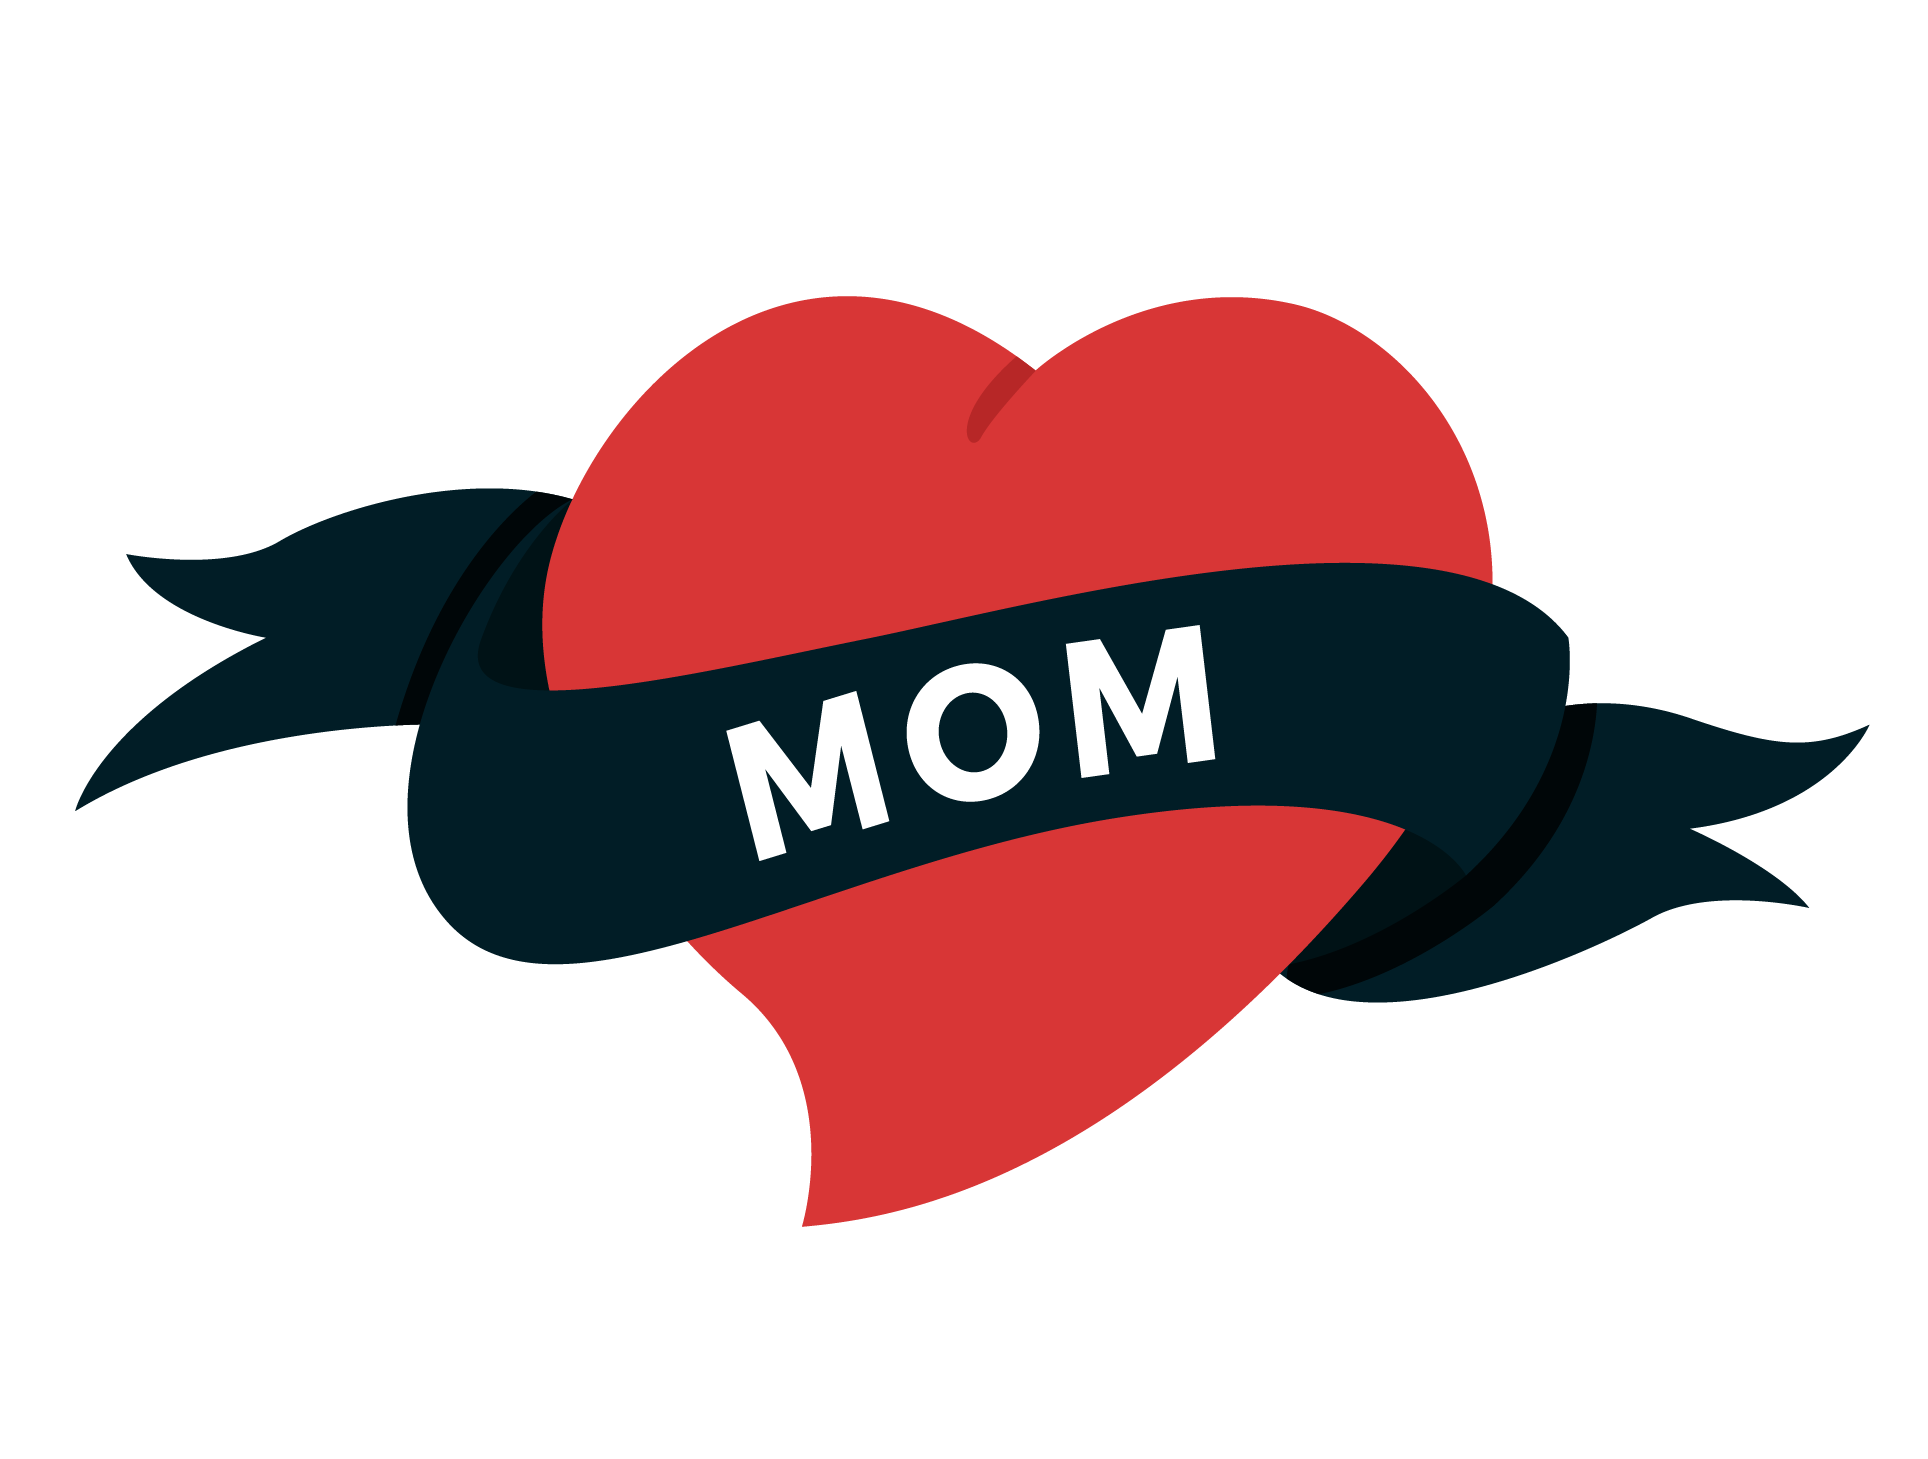 Mom heart tattoo png. Old school swallow valentine